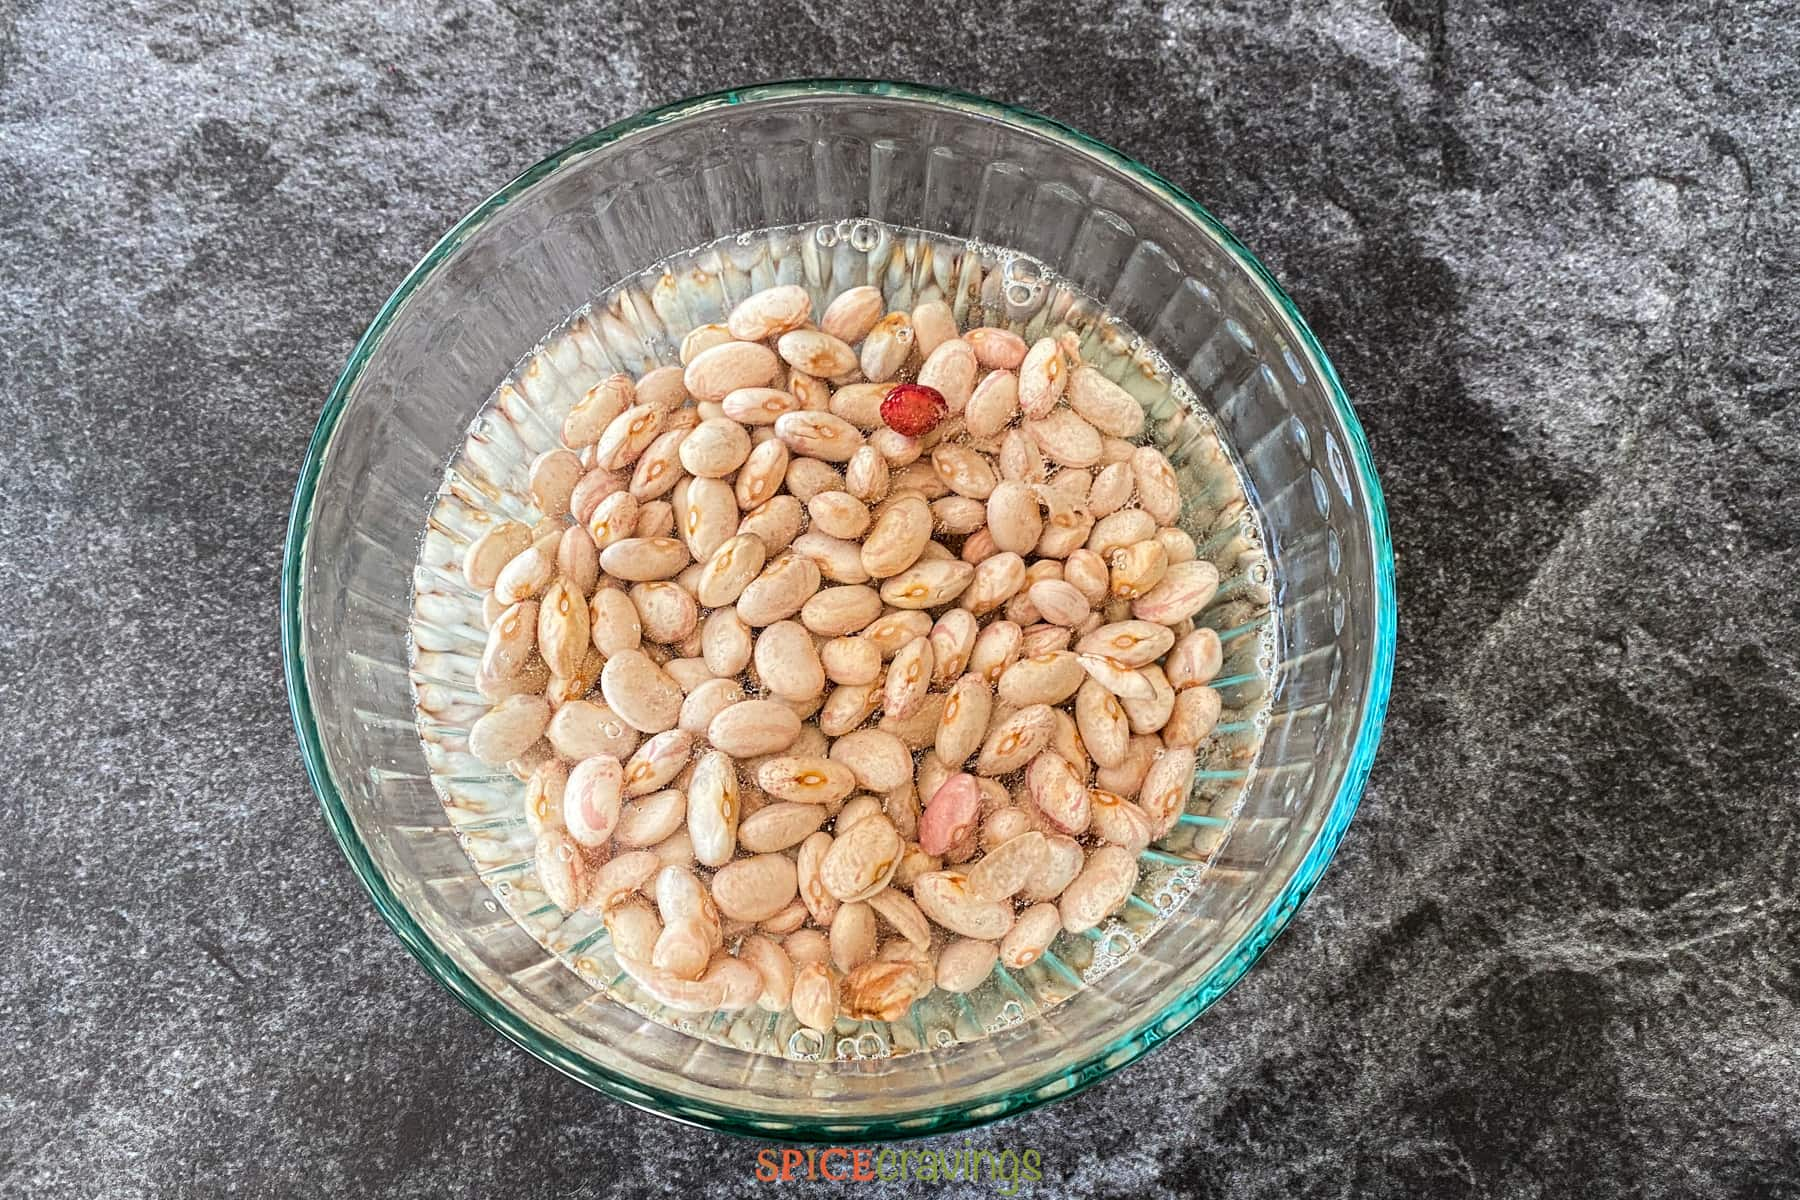 Rinsing and soaking pinto beans